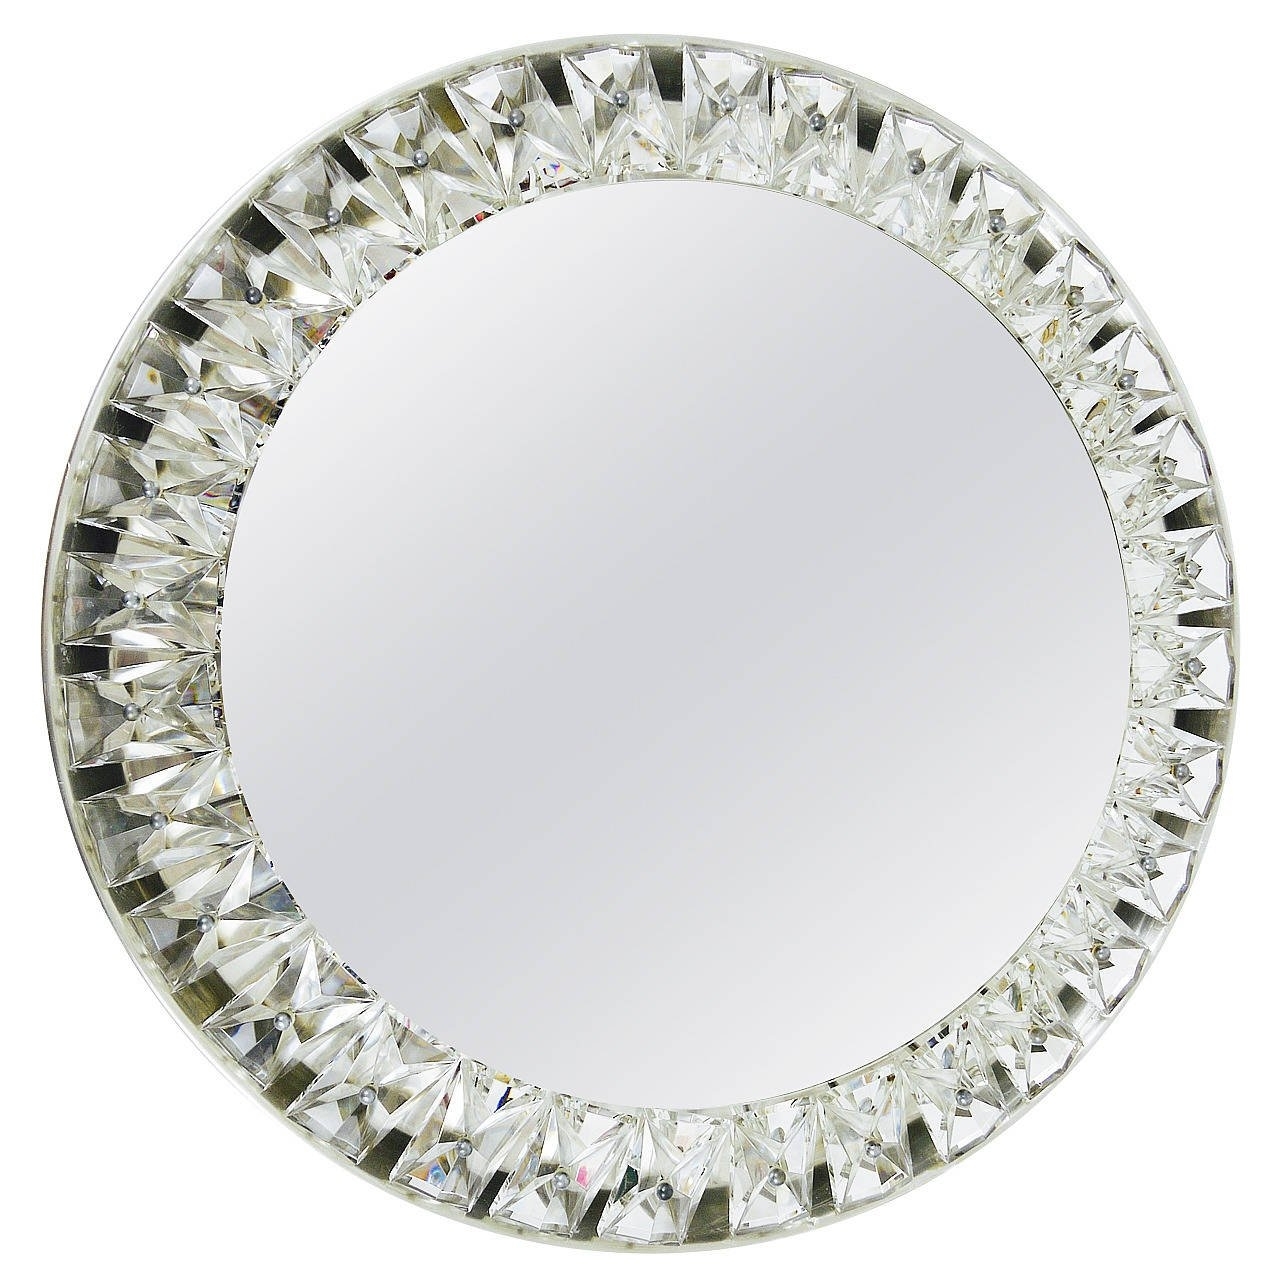 Big Round Bakalowits Backlit Wall Mirror With Huge Crystals Pertaining To Huge Round Mirror (Image 10 of 15)